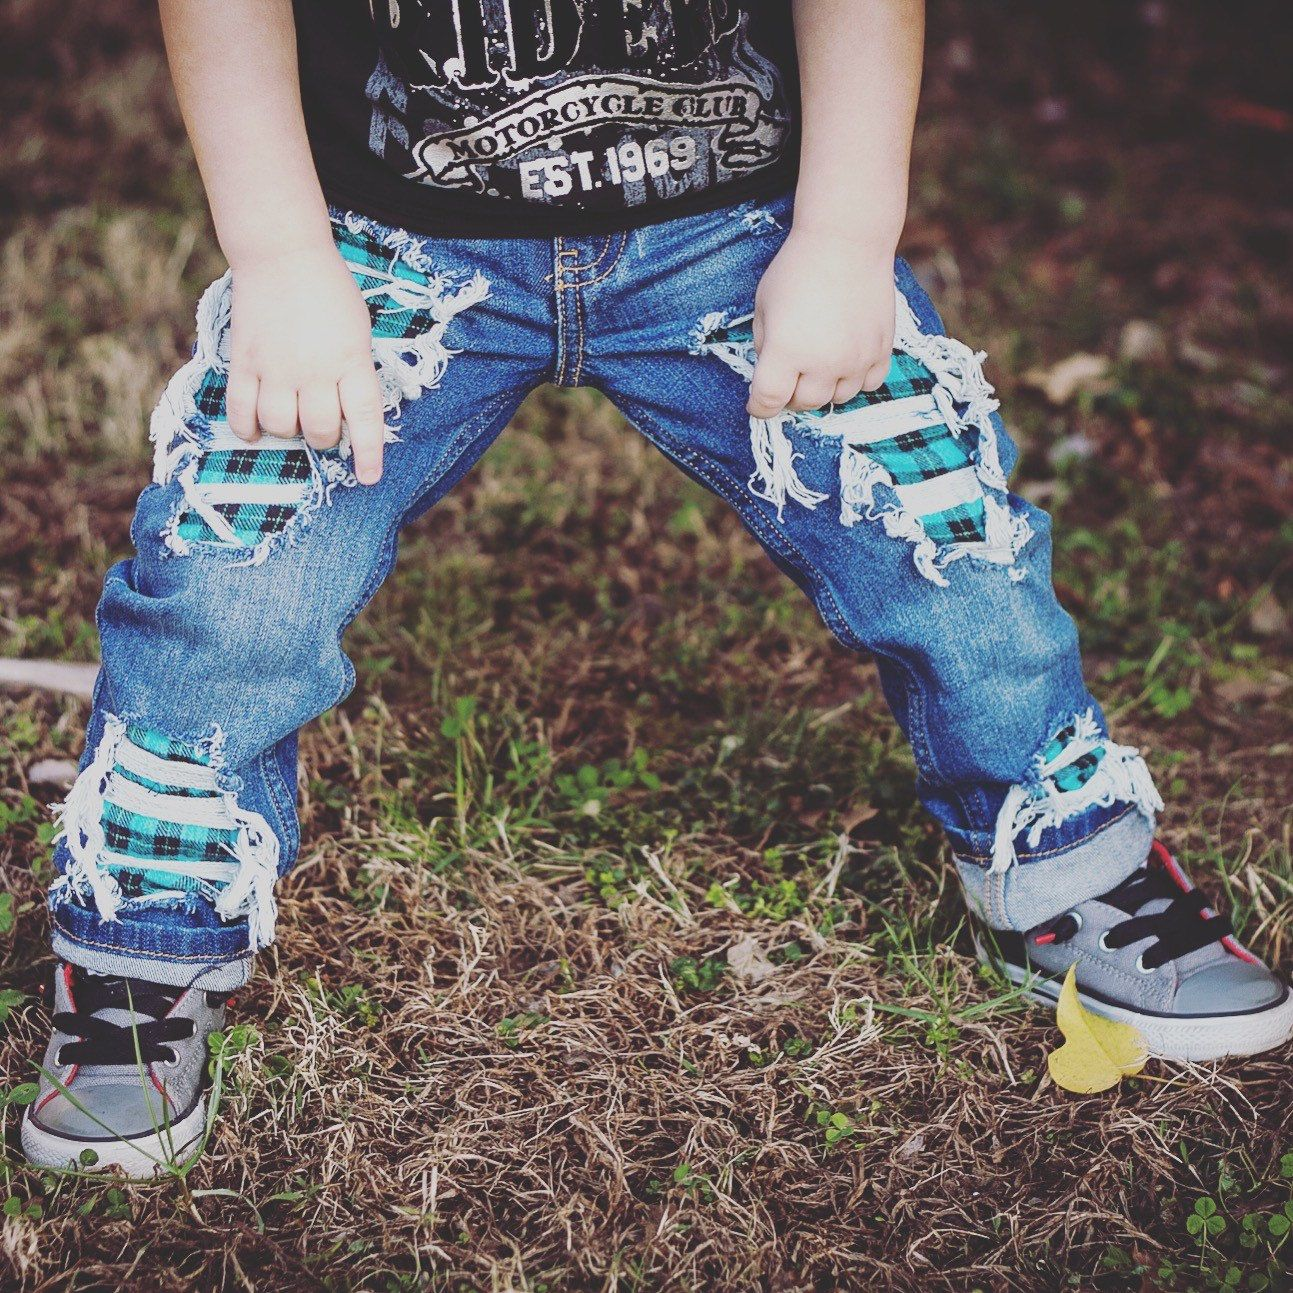 Just Shred-Size 6months-kids size 12 Unisex Skinny jeans boys girls denim distressed jeans baby toddler clothes hipster fashion ripped by CrownedLaurelkids on Etsy https://www.etsy.com/listing/263569219/just-shred-size-6months-kids-size-12